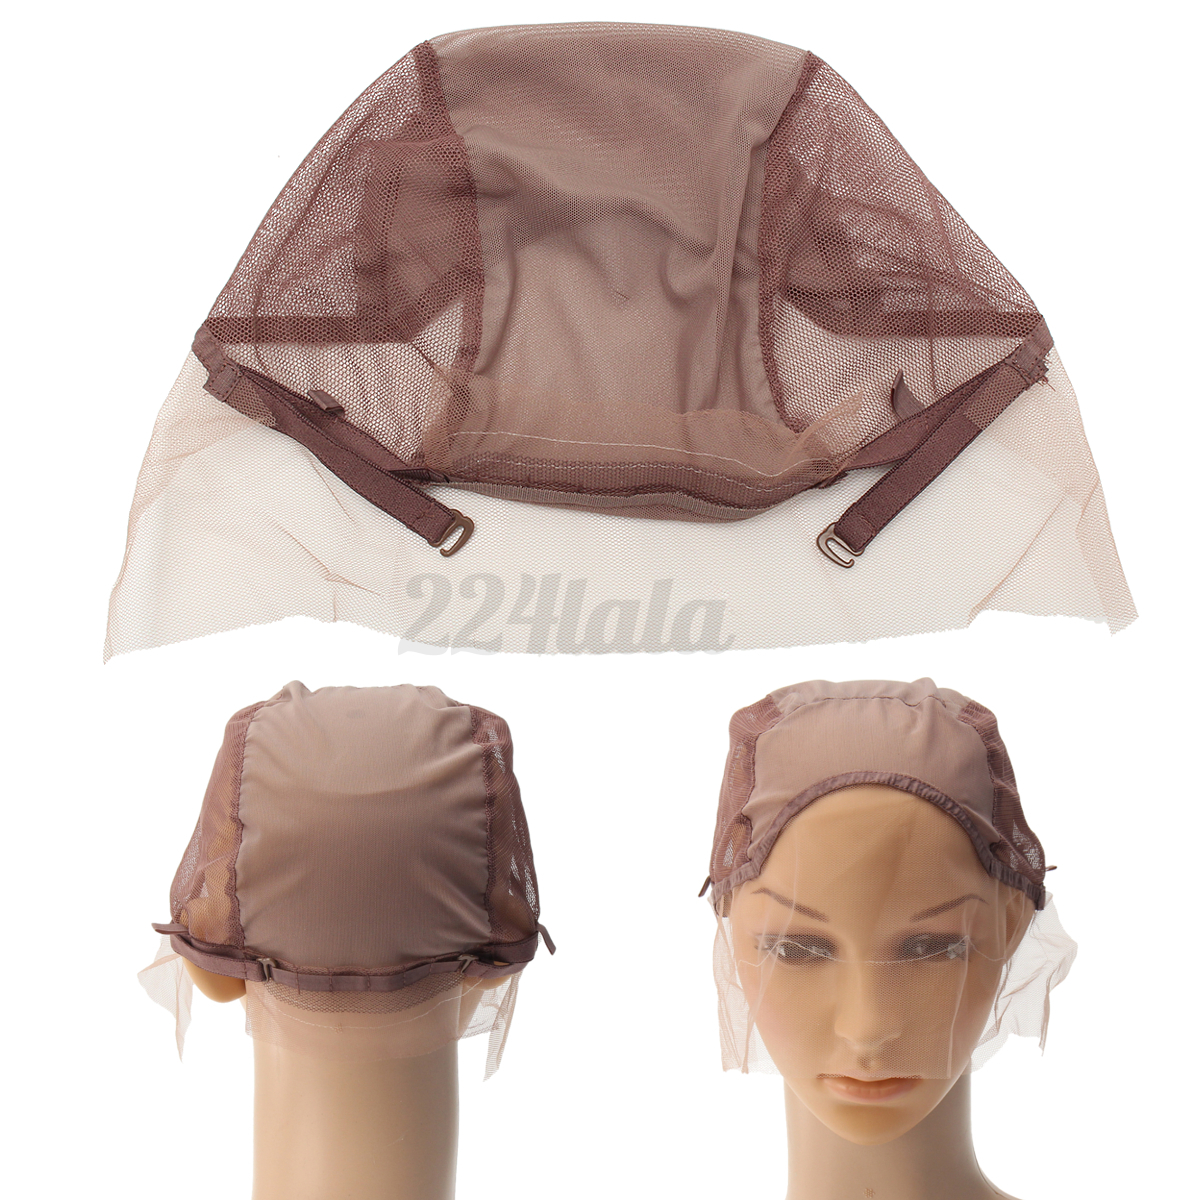 Lace Front Wig Cap For Wig Making Weave Cap Elastic Hair